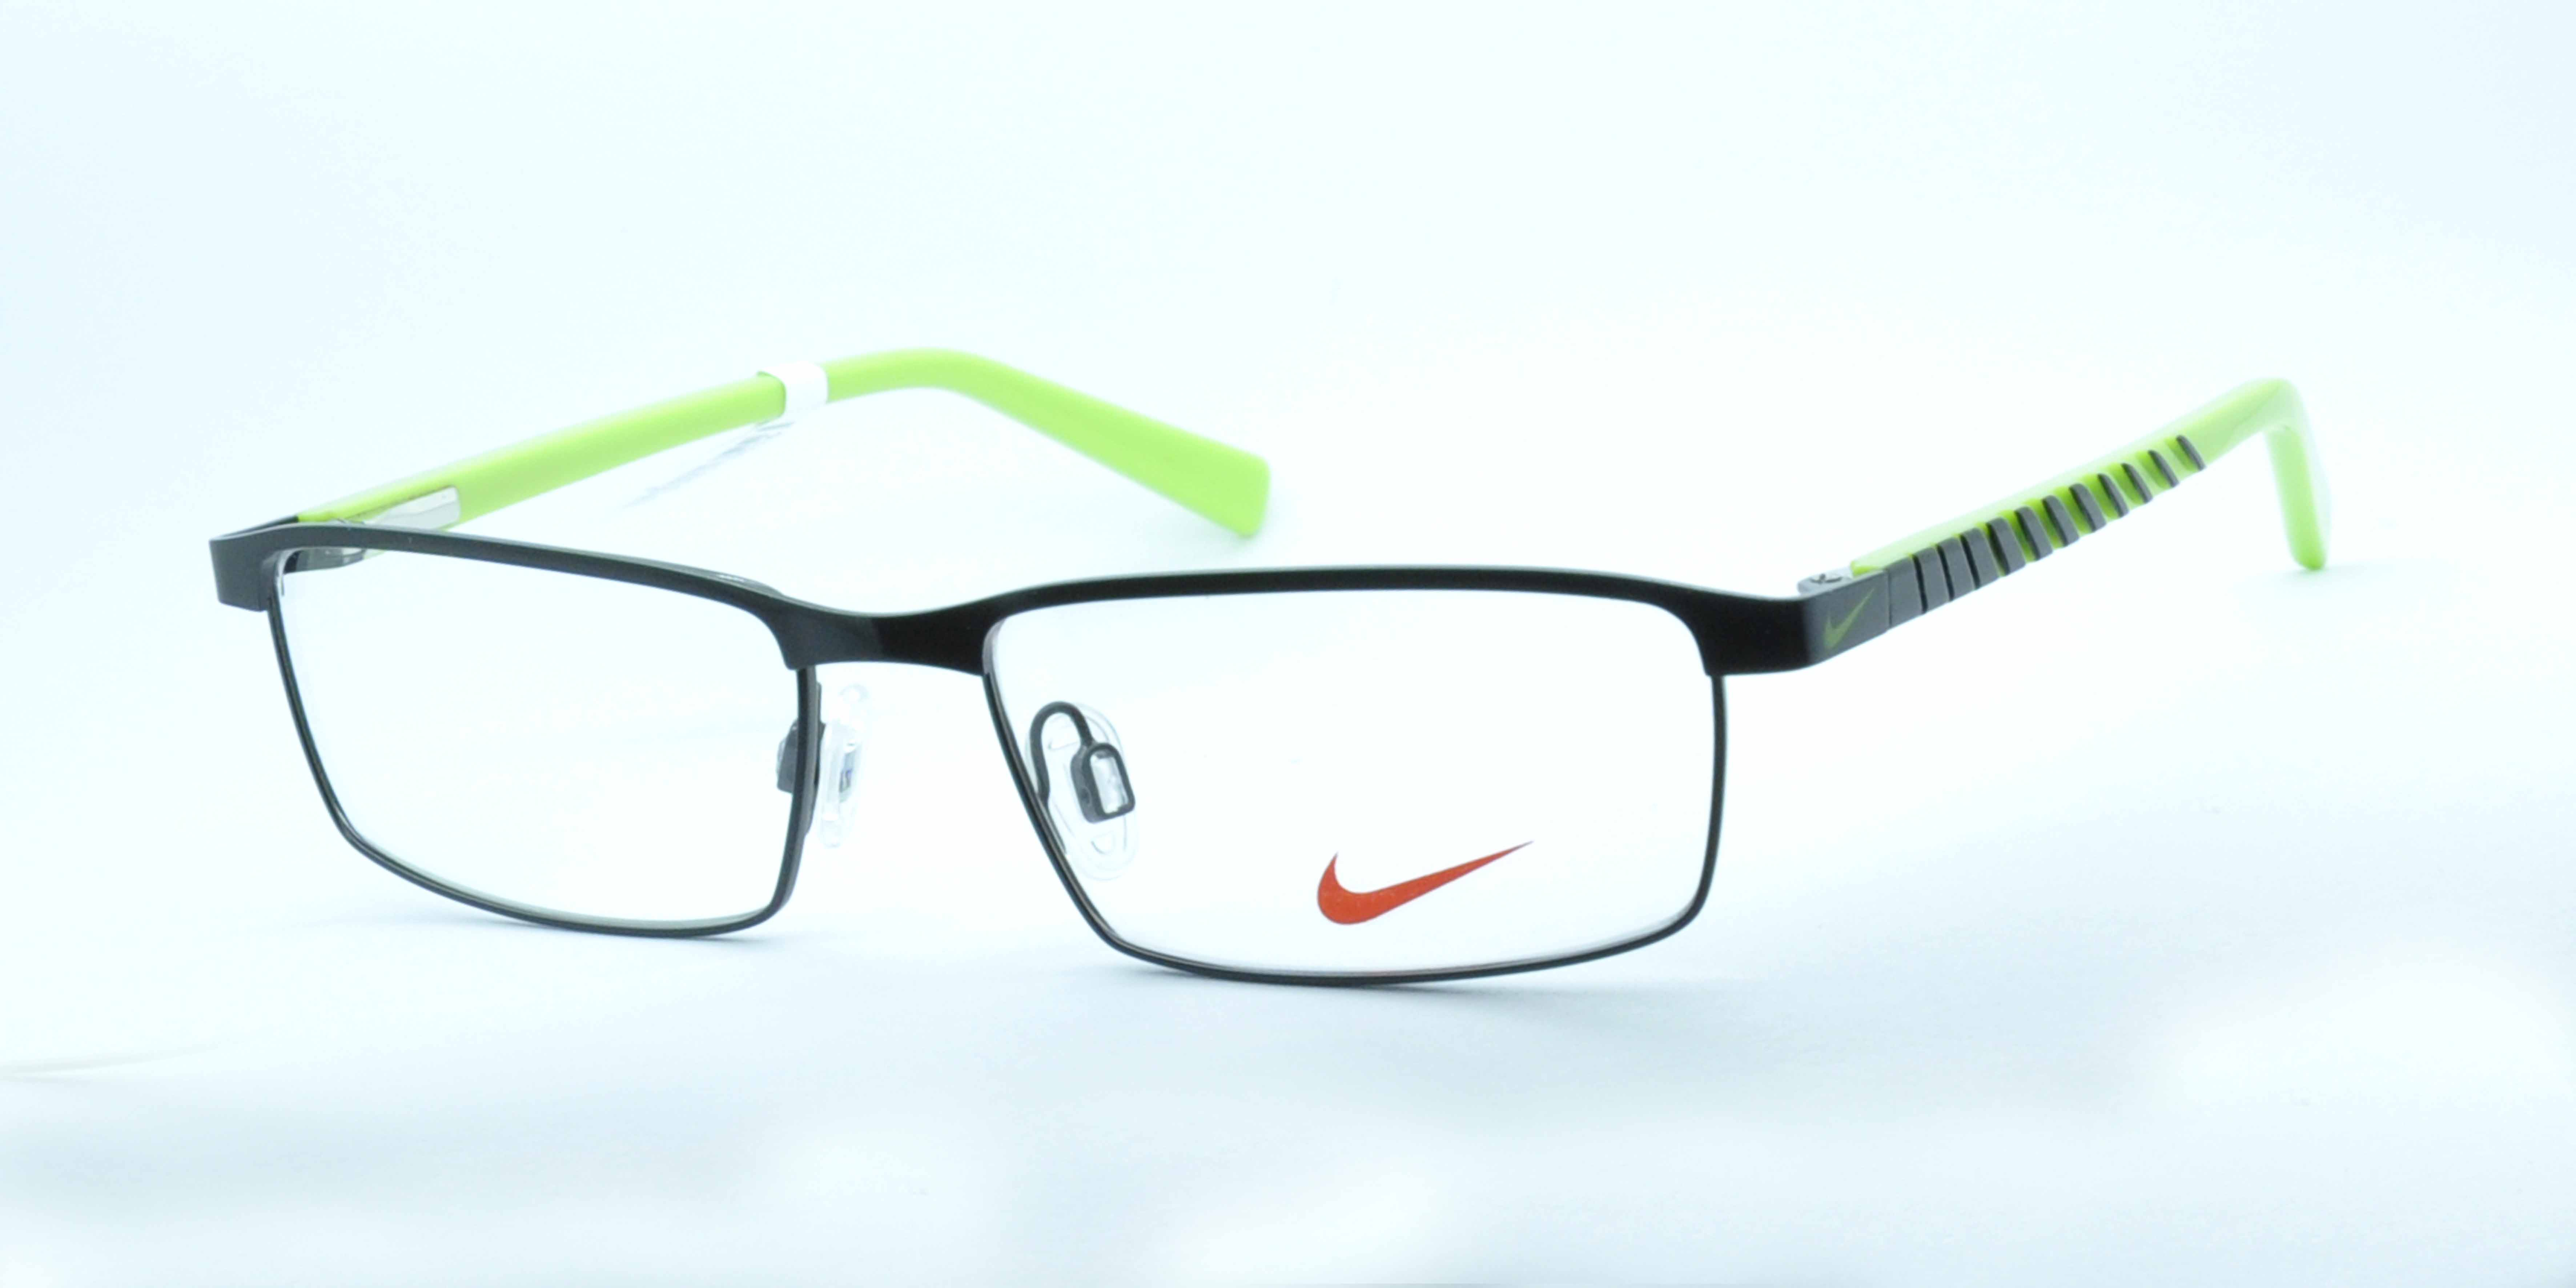 Buy adidas spectacles frames > OFF59% Discounted